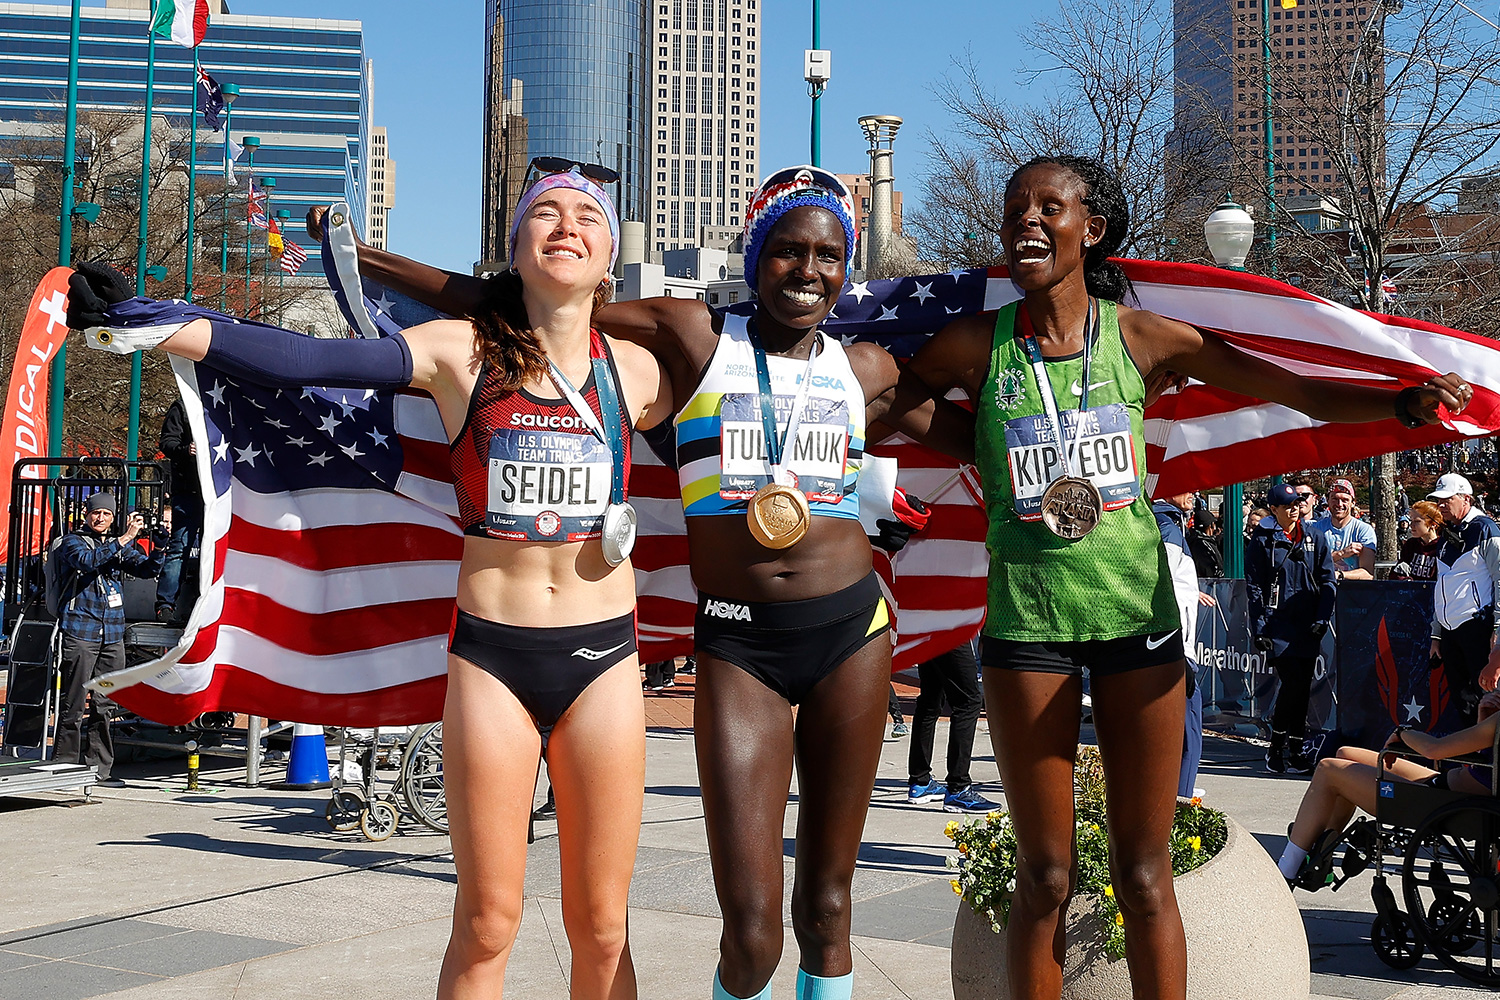 Molly Seidel, Aliphine Tuliamuk, and Sally Kipyego pose after finishing in the top three of the Women's U.S. Olympic marathon team trials on February 29, 2020 in Atlanta, Georgia